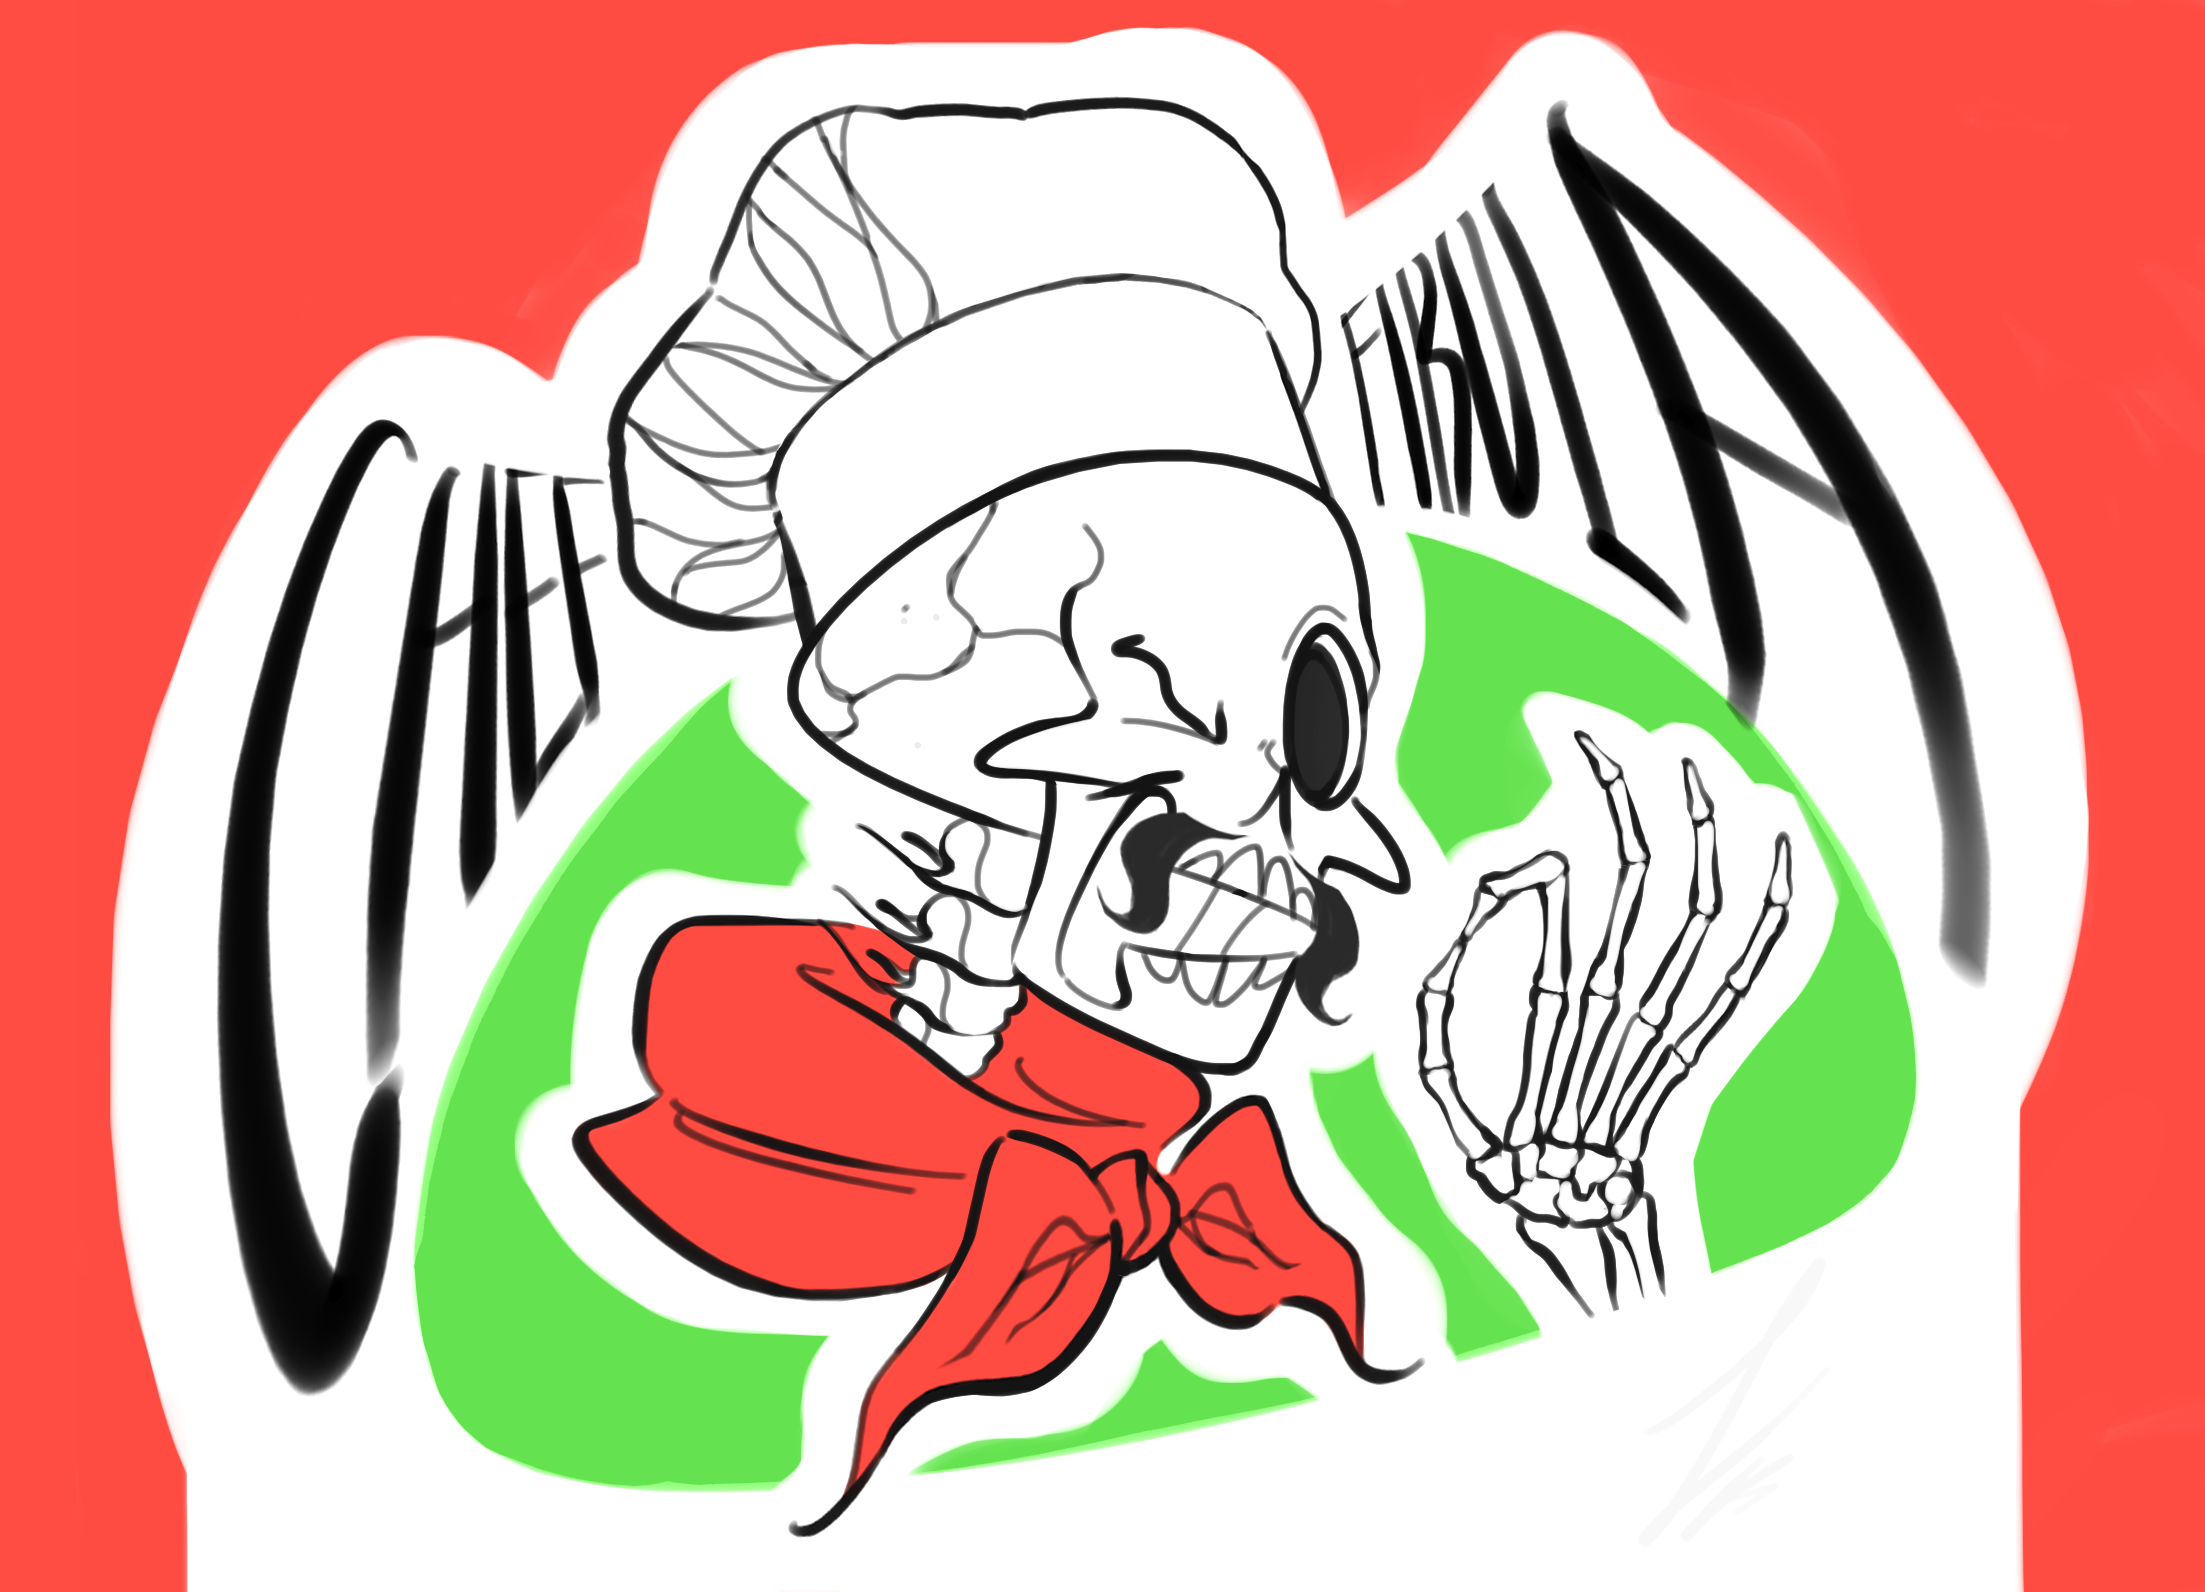 Art Trade - Chef Fibula